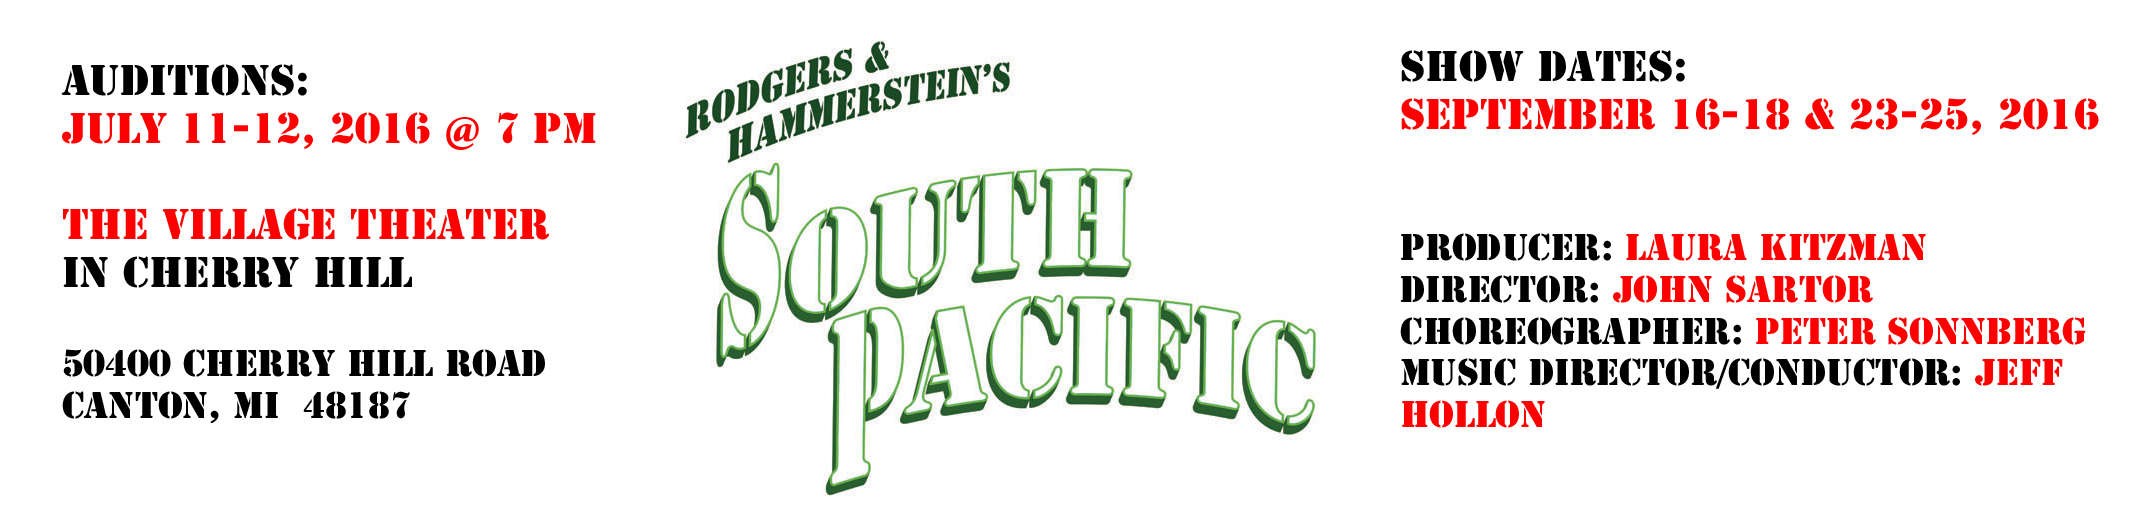 SouthPacificBanner2_website